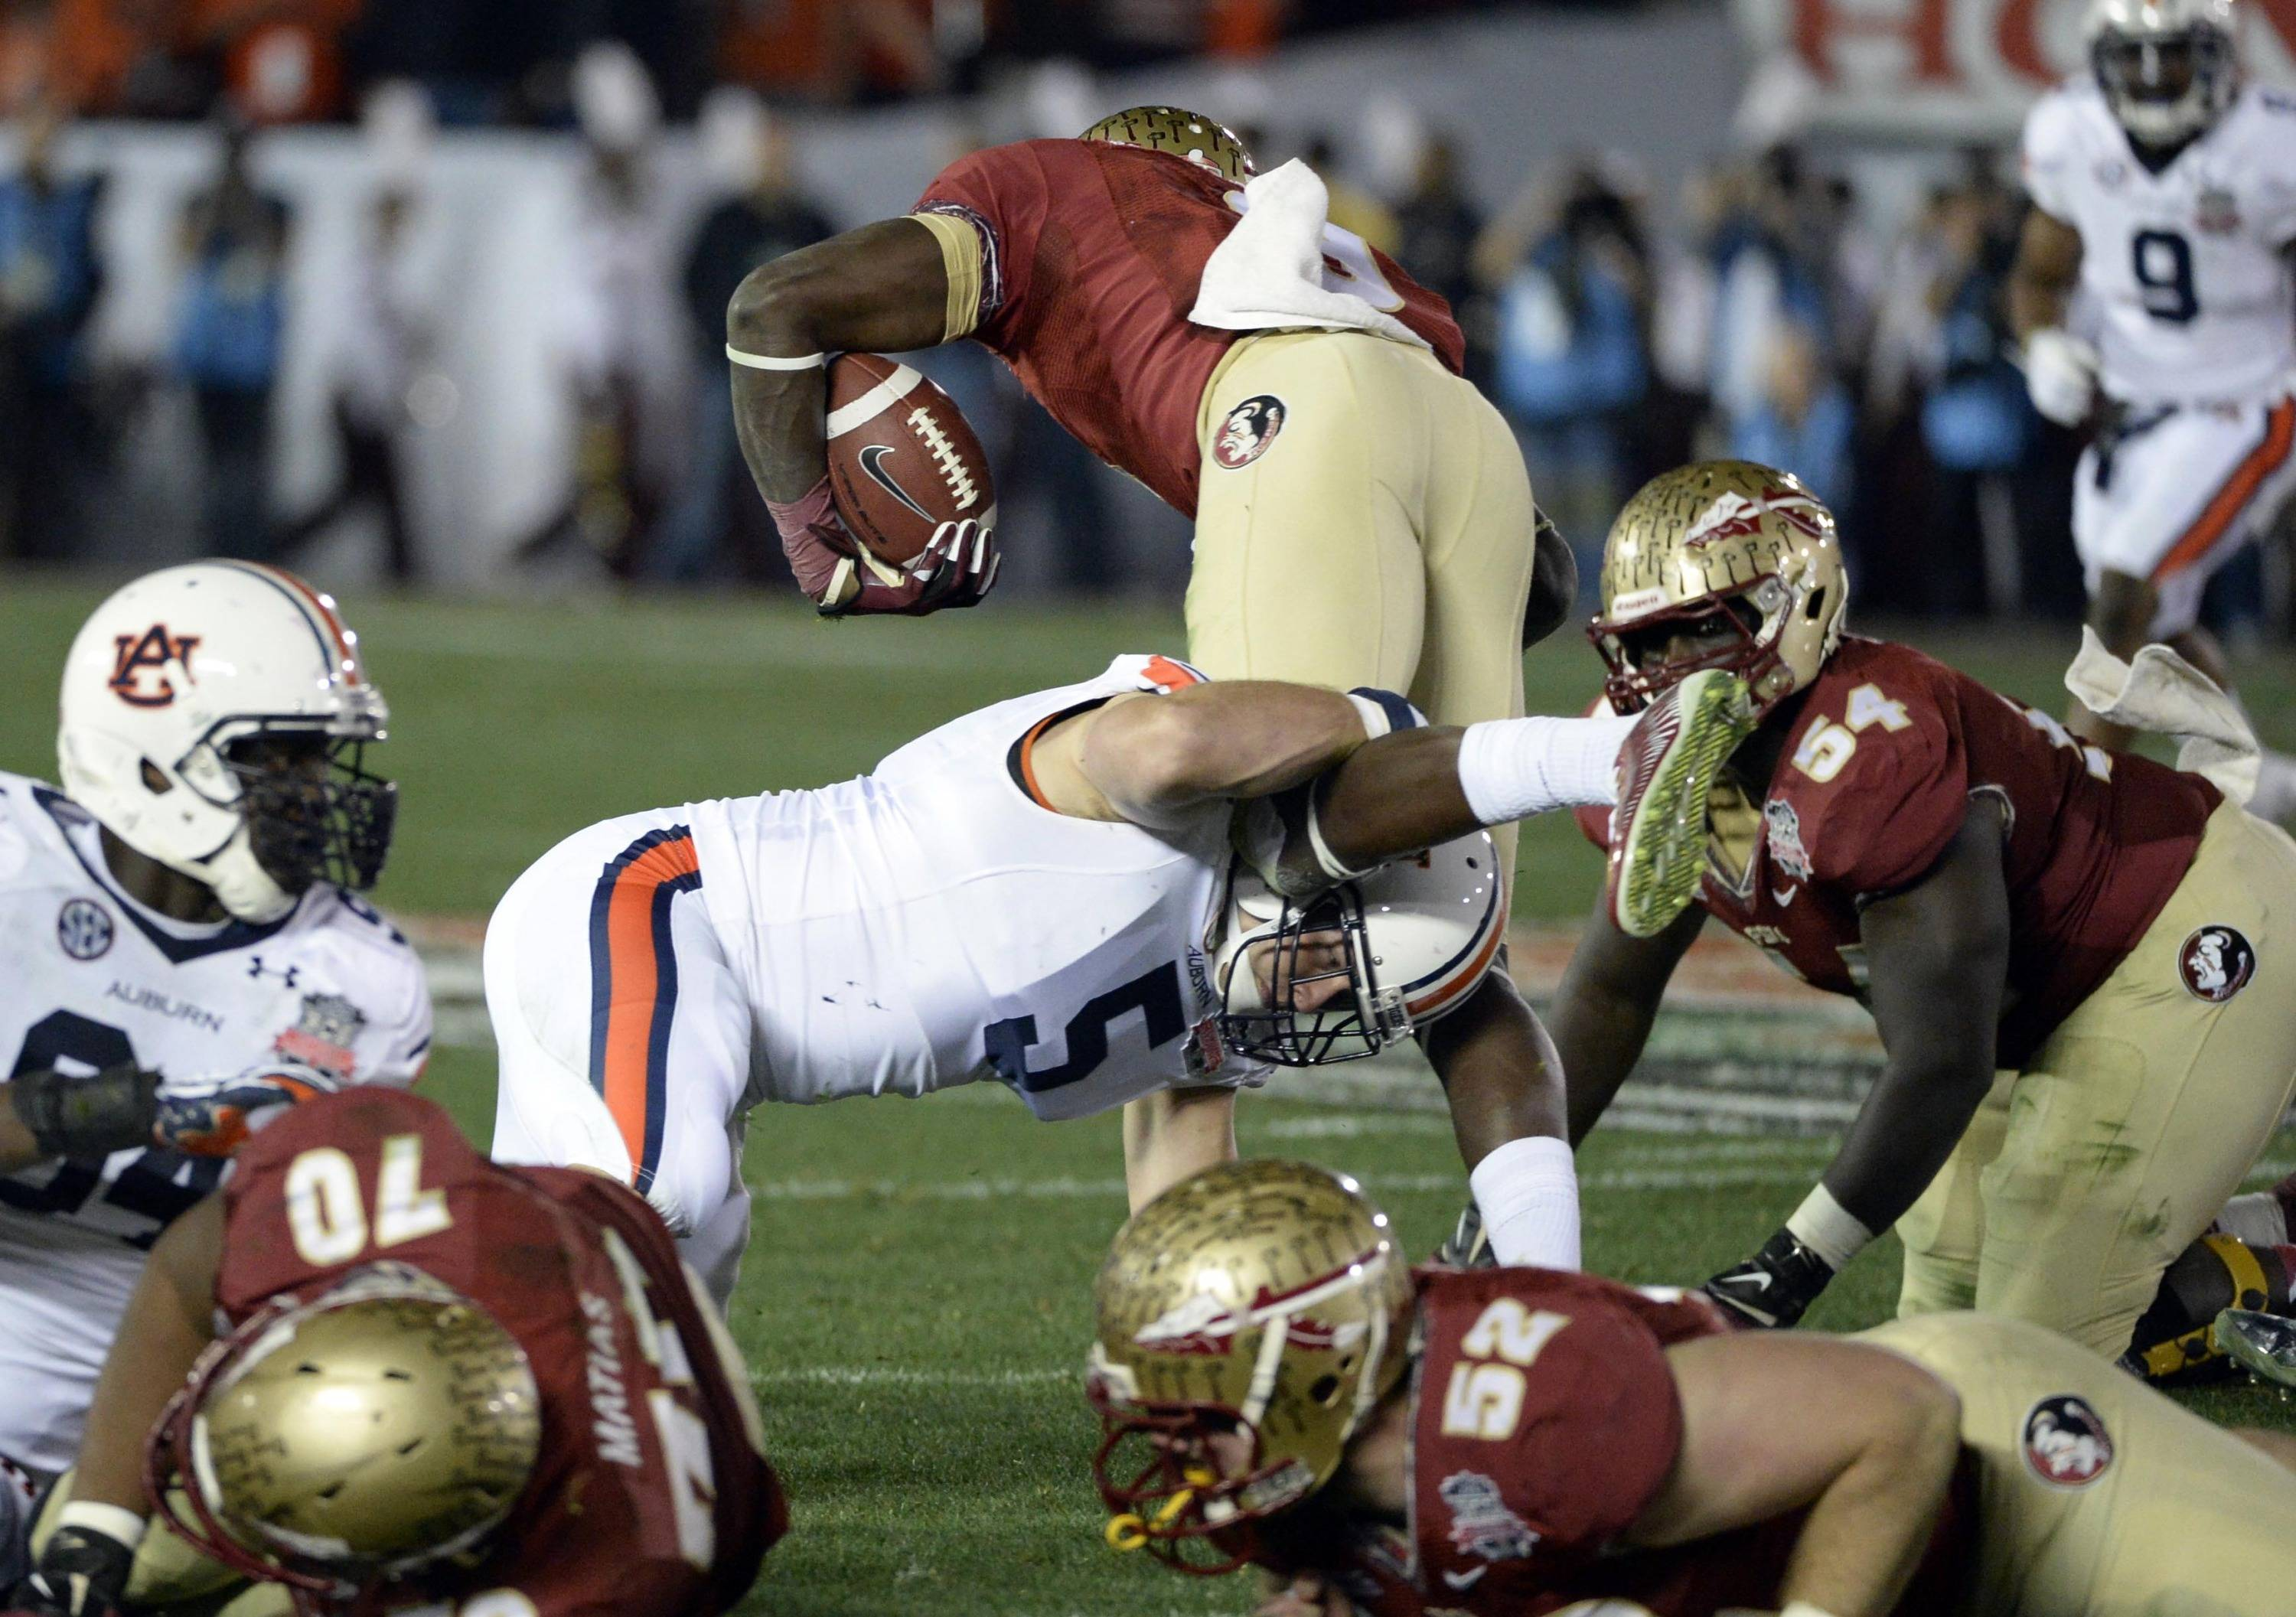 Jan 6, 2014; Pasadena, CA, USA; Auburn Tigers linebacker Jake Holland (5) tackles Florida State Seminoles running back Karlos Williams (9) during the first half of the 2014 BCS National Championship game at the Rose Bowl.  Mandatory Credit: Richard Mackson-USA TODAY Sports